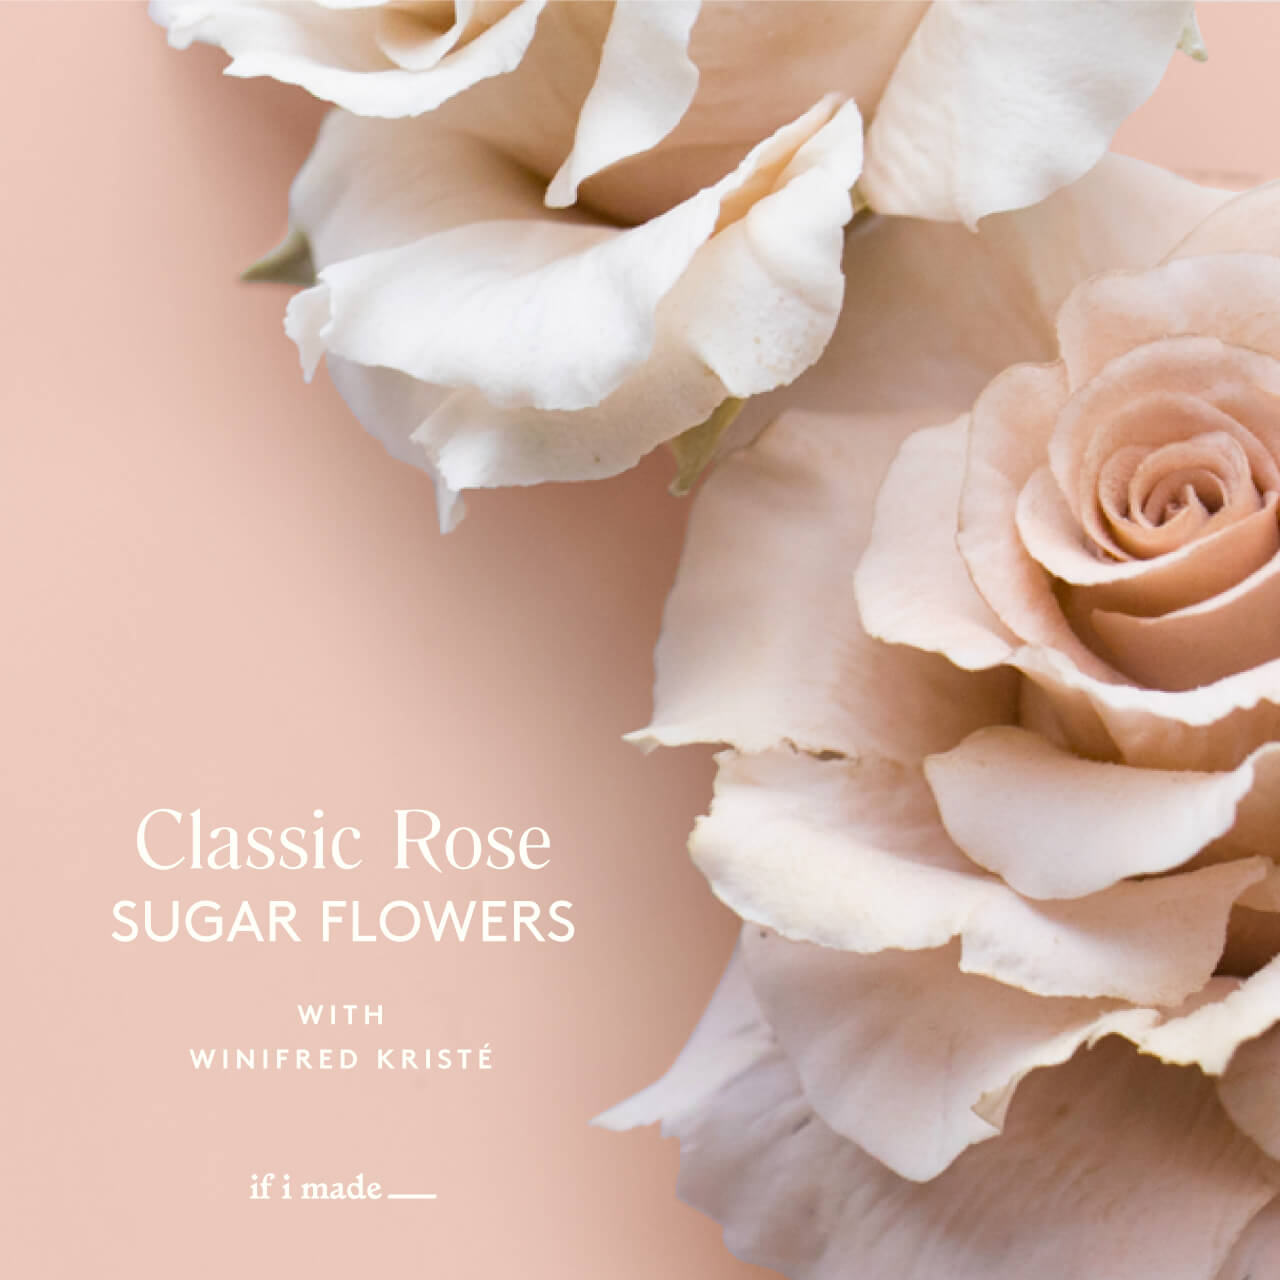 Classic Rose Sugar Flowers